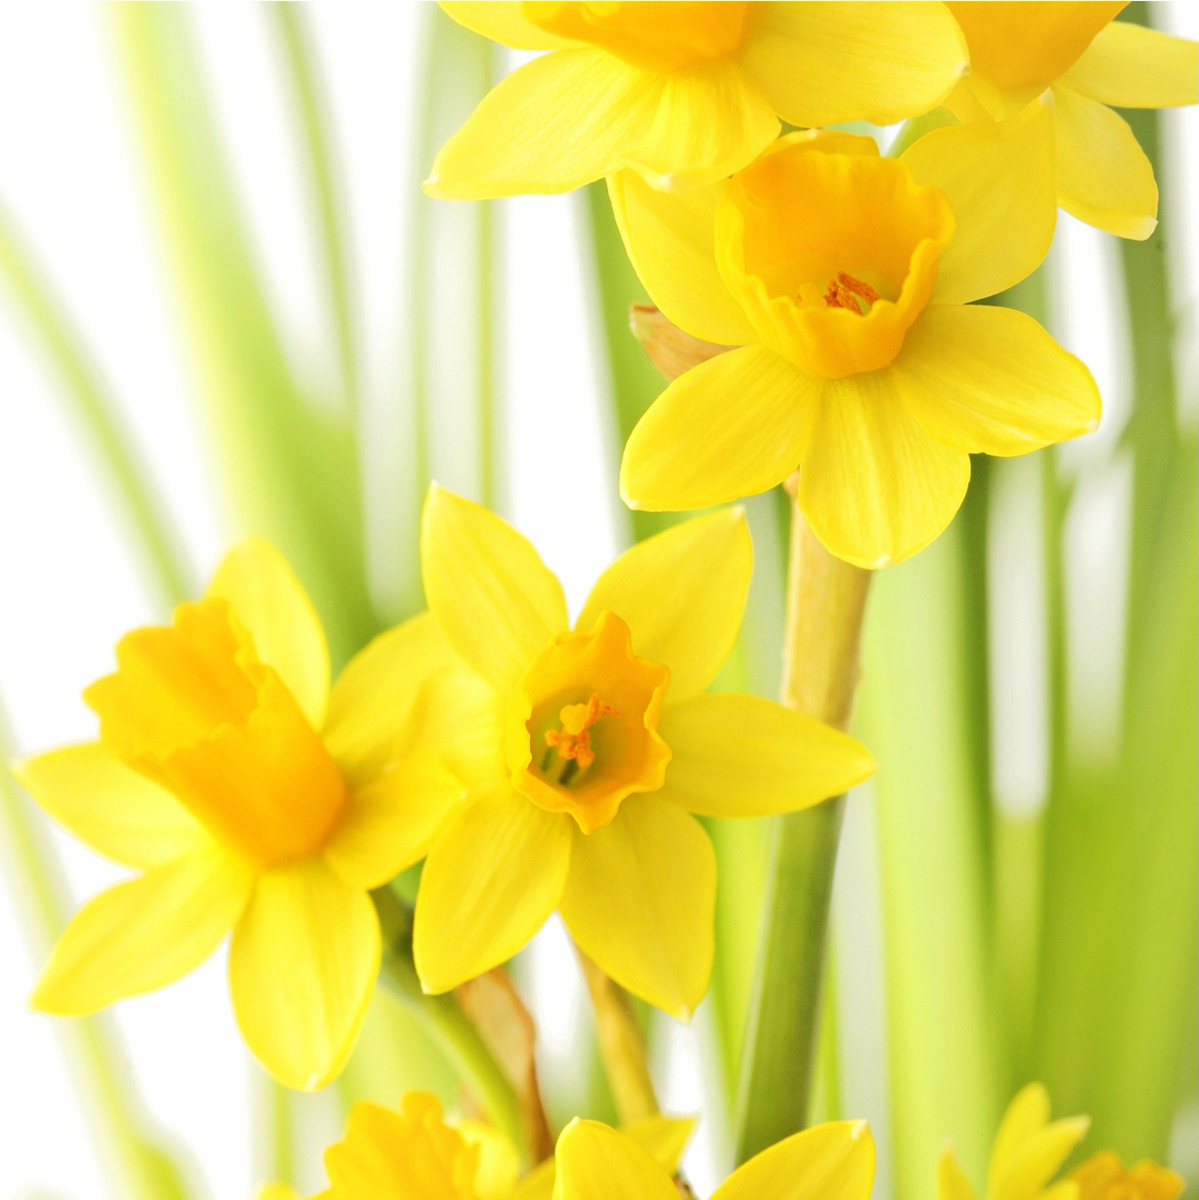 Spring-blooming flowers remind us of the eternal renewal delivered to us by His sacrifice.